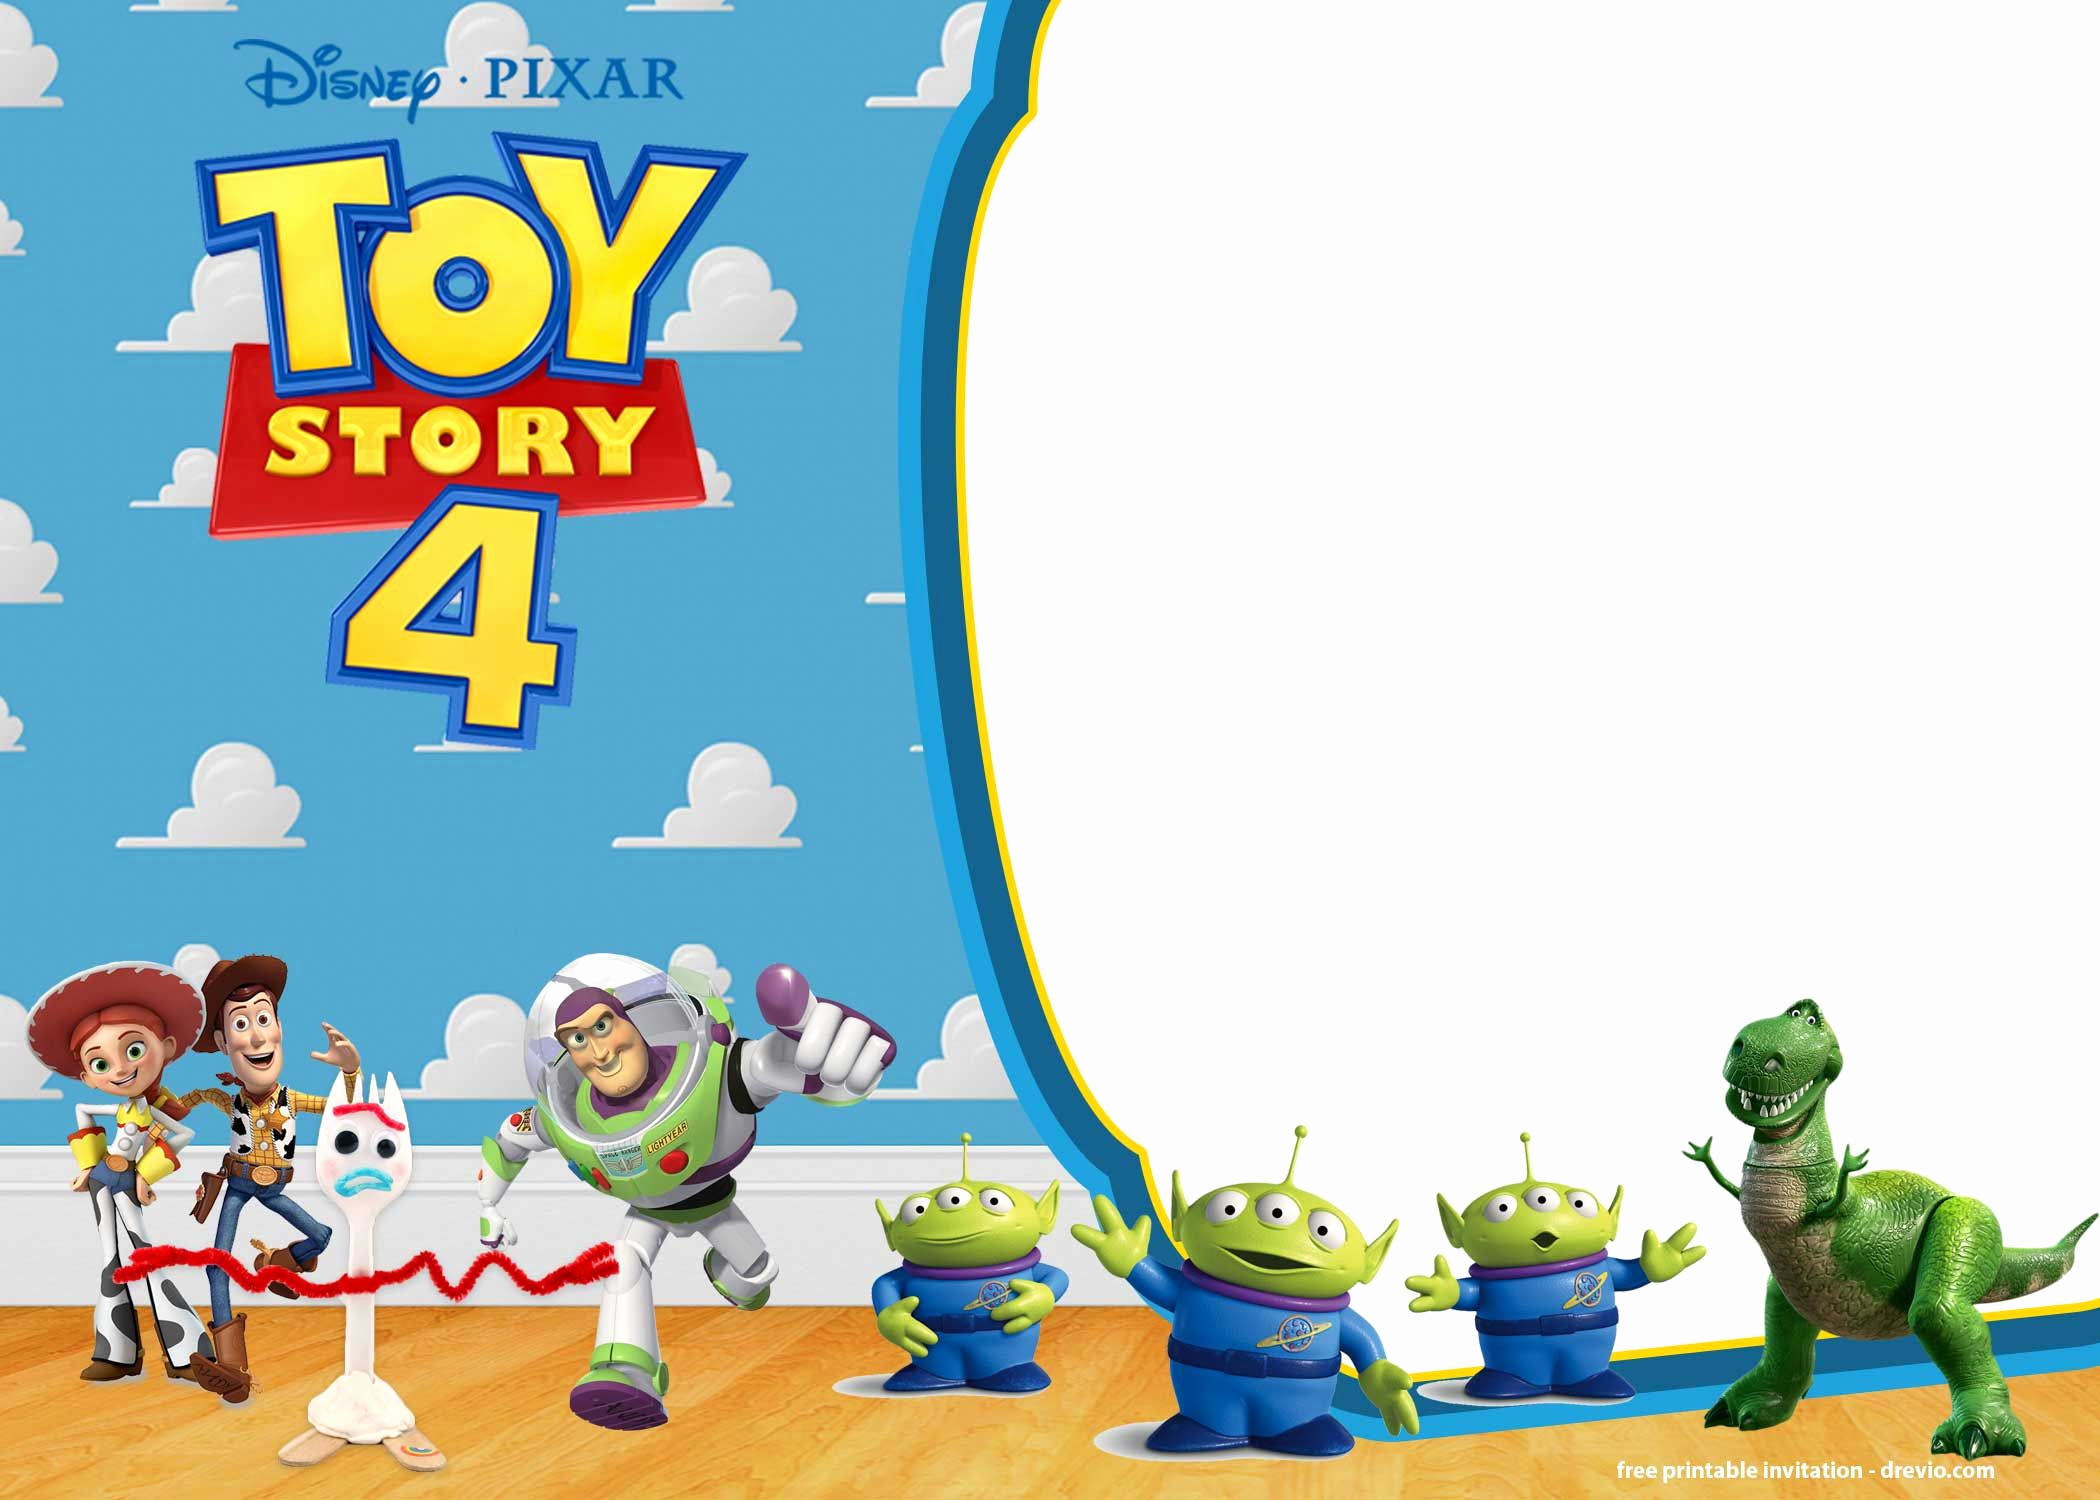 Toy Story Invitation Template Free Awesome Free Printable toy Story 4 Invitation